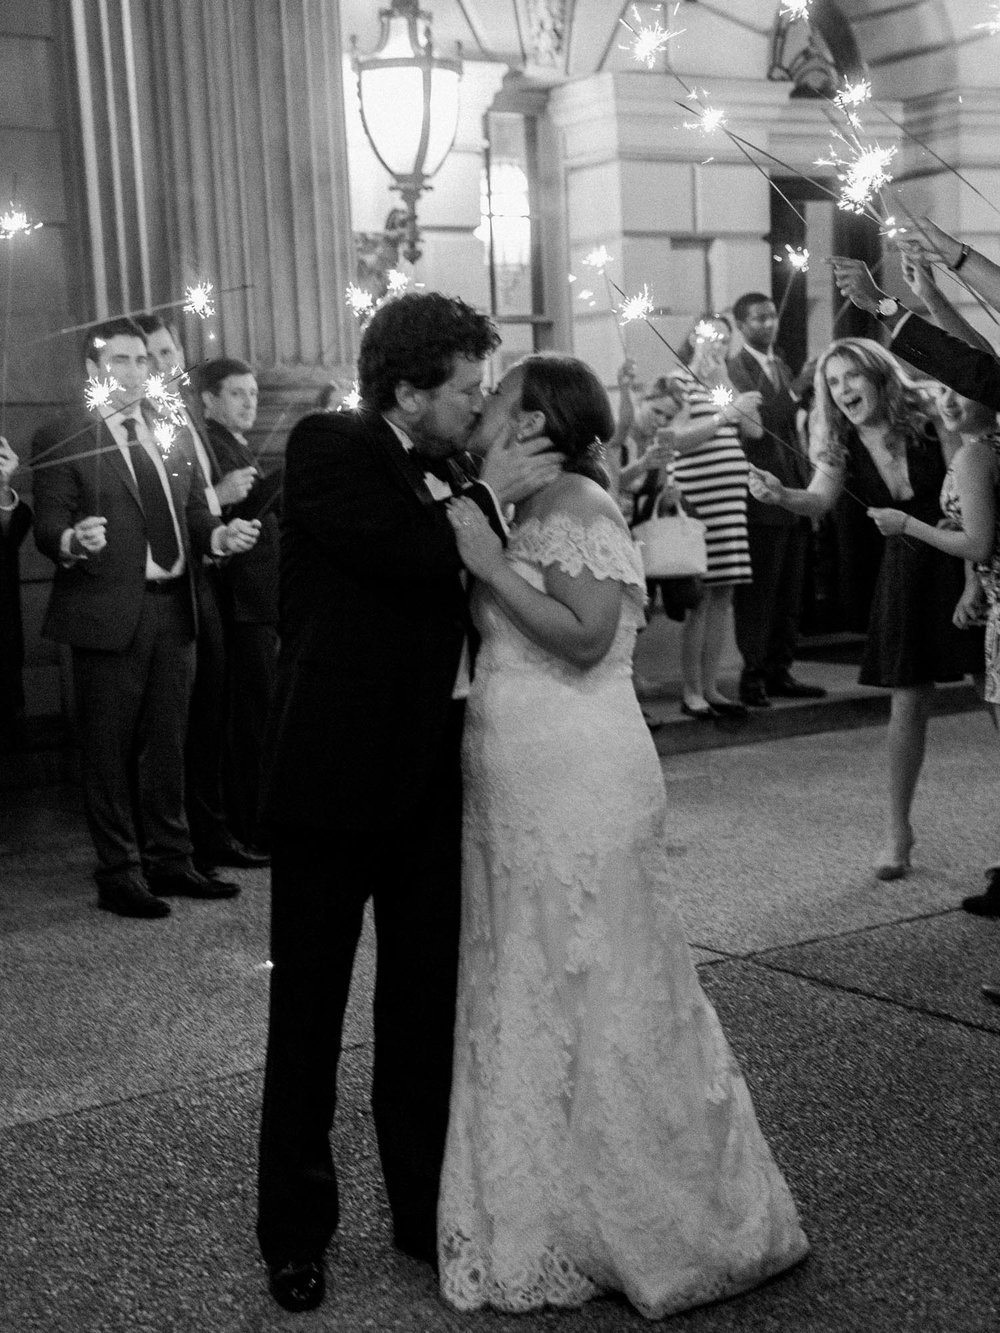 Anderson House Wedding Washington DC Sparkler Exit Plume Photography 2017